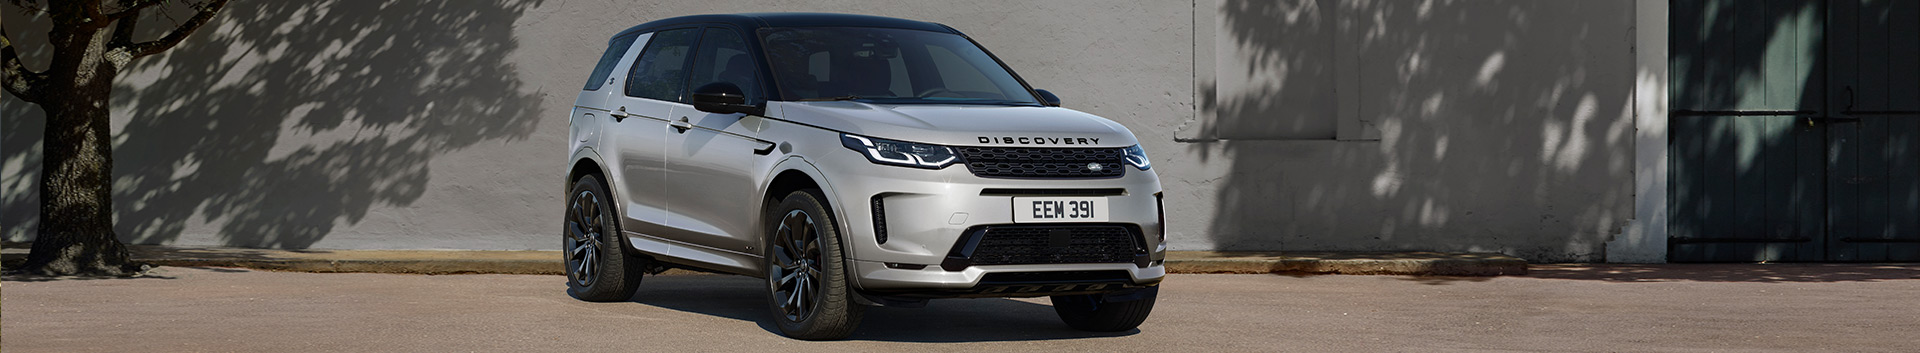 My21 Discovery Sport